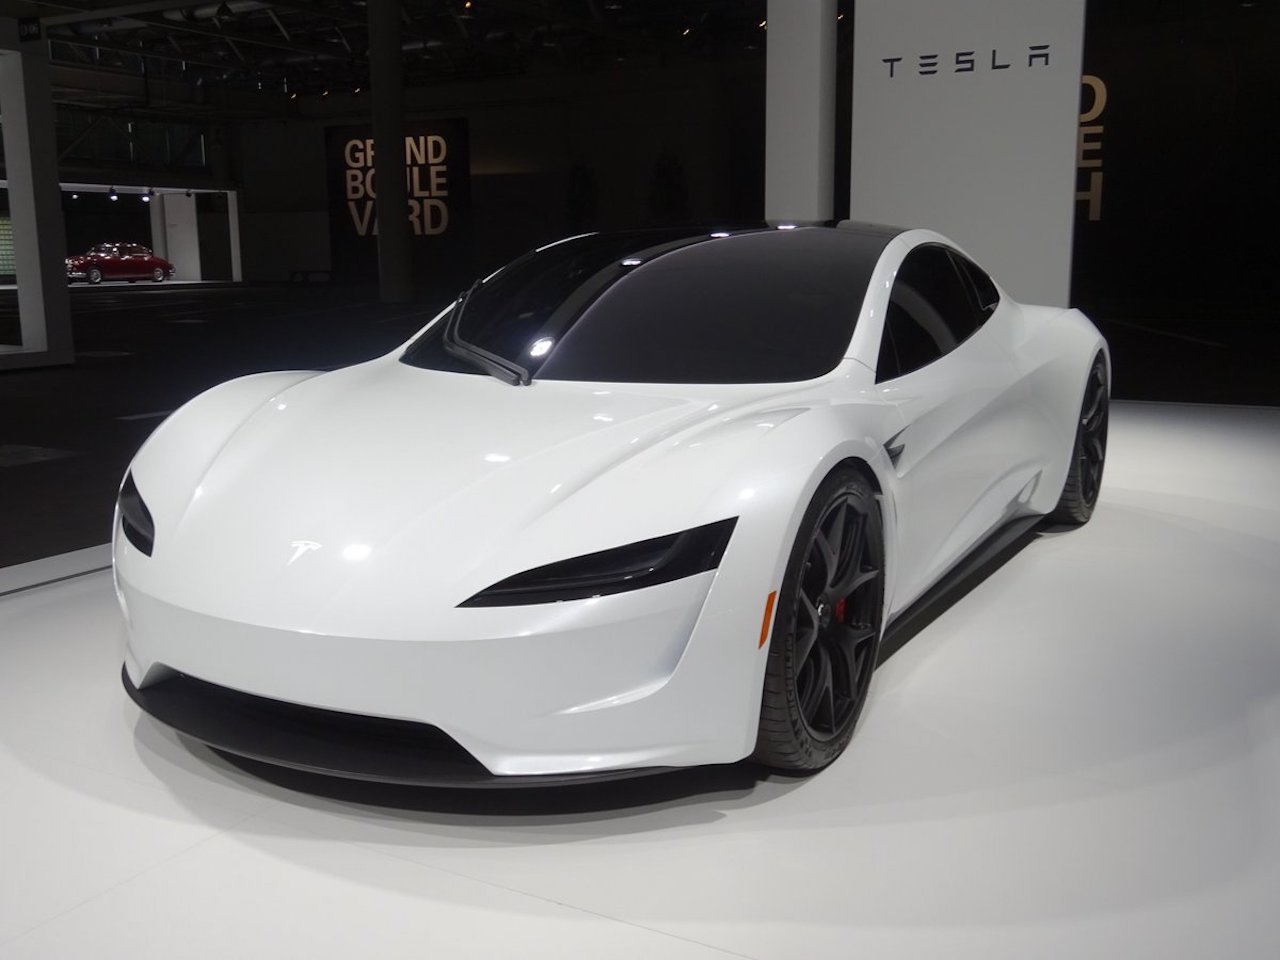 Tesla Roadster in Grand Basel 2018 (1)